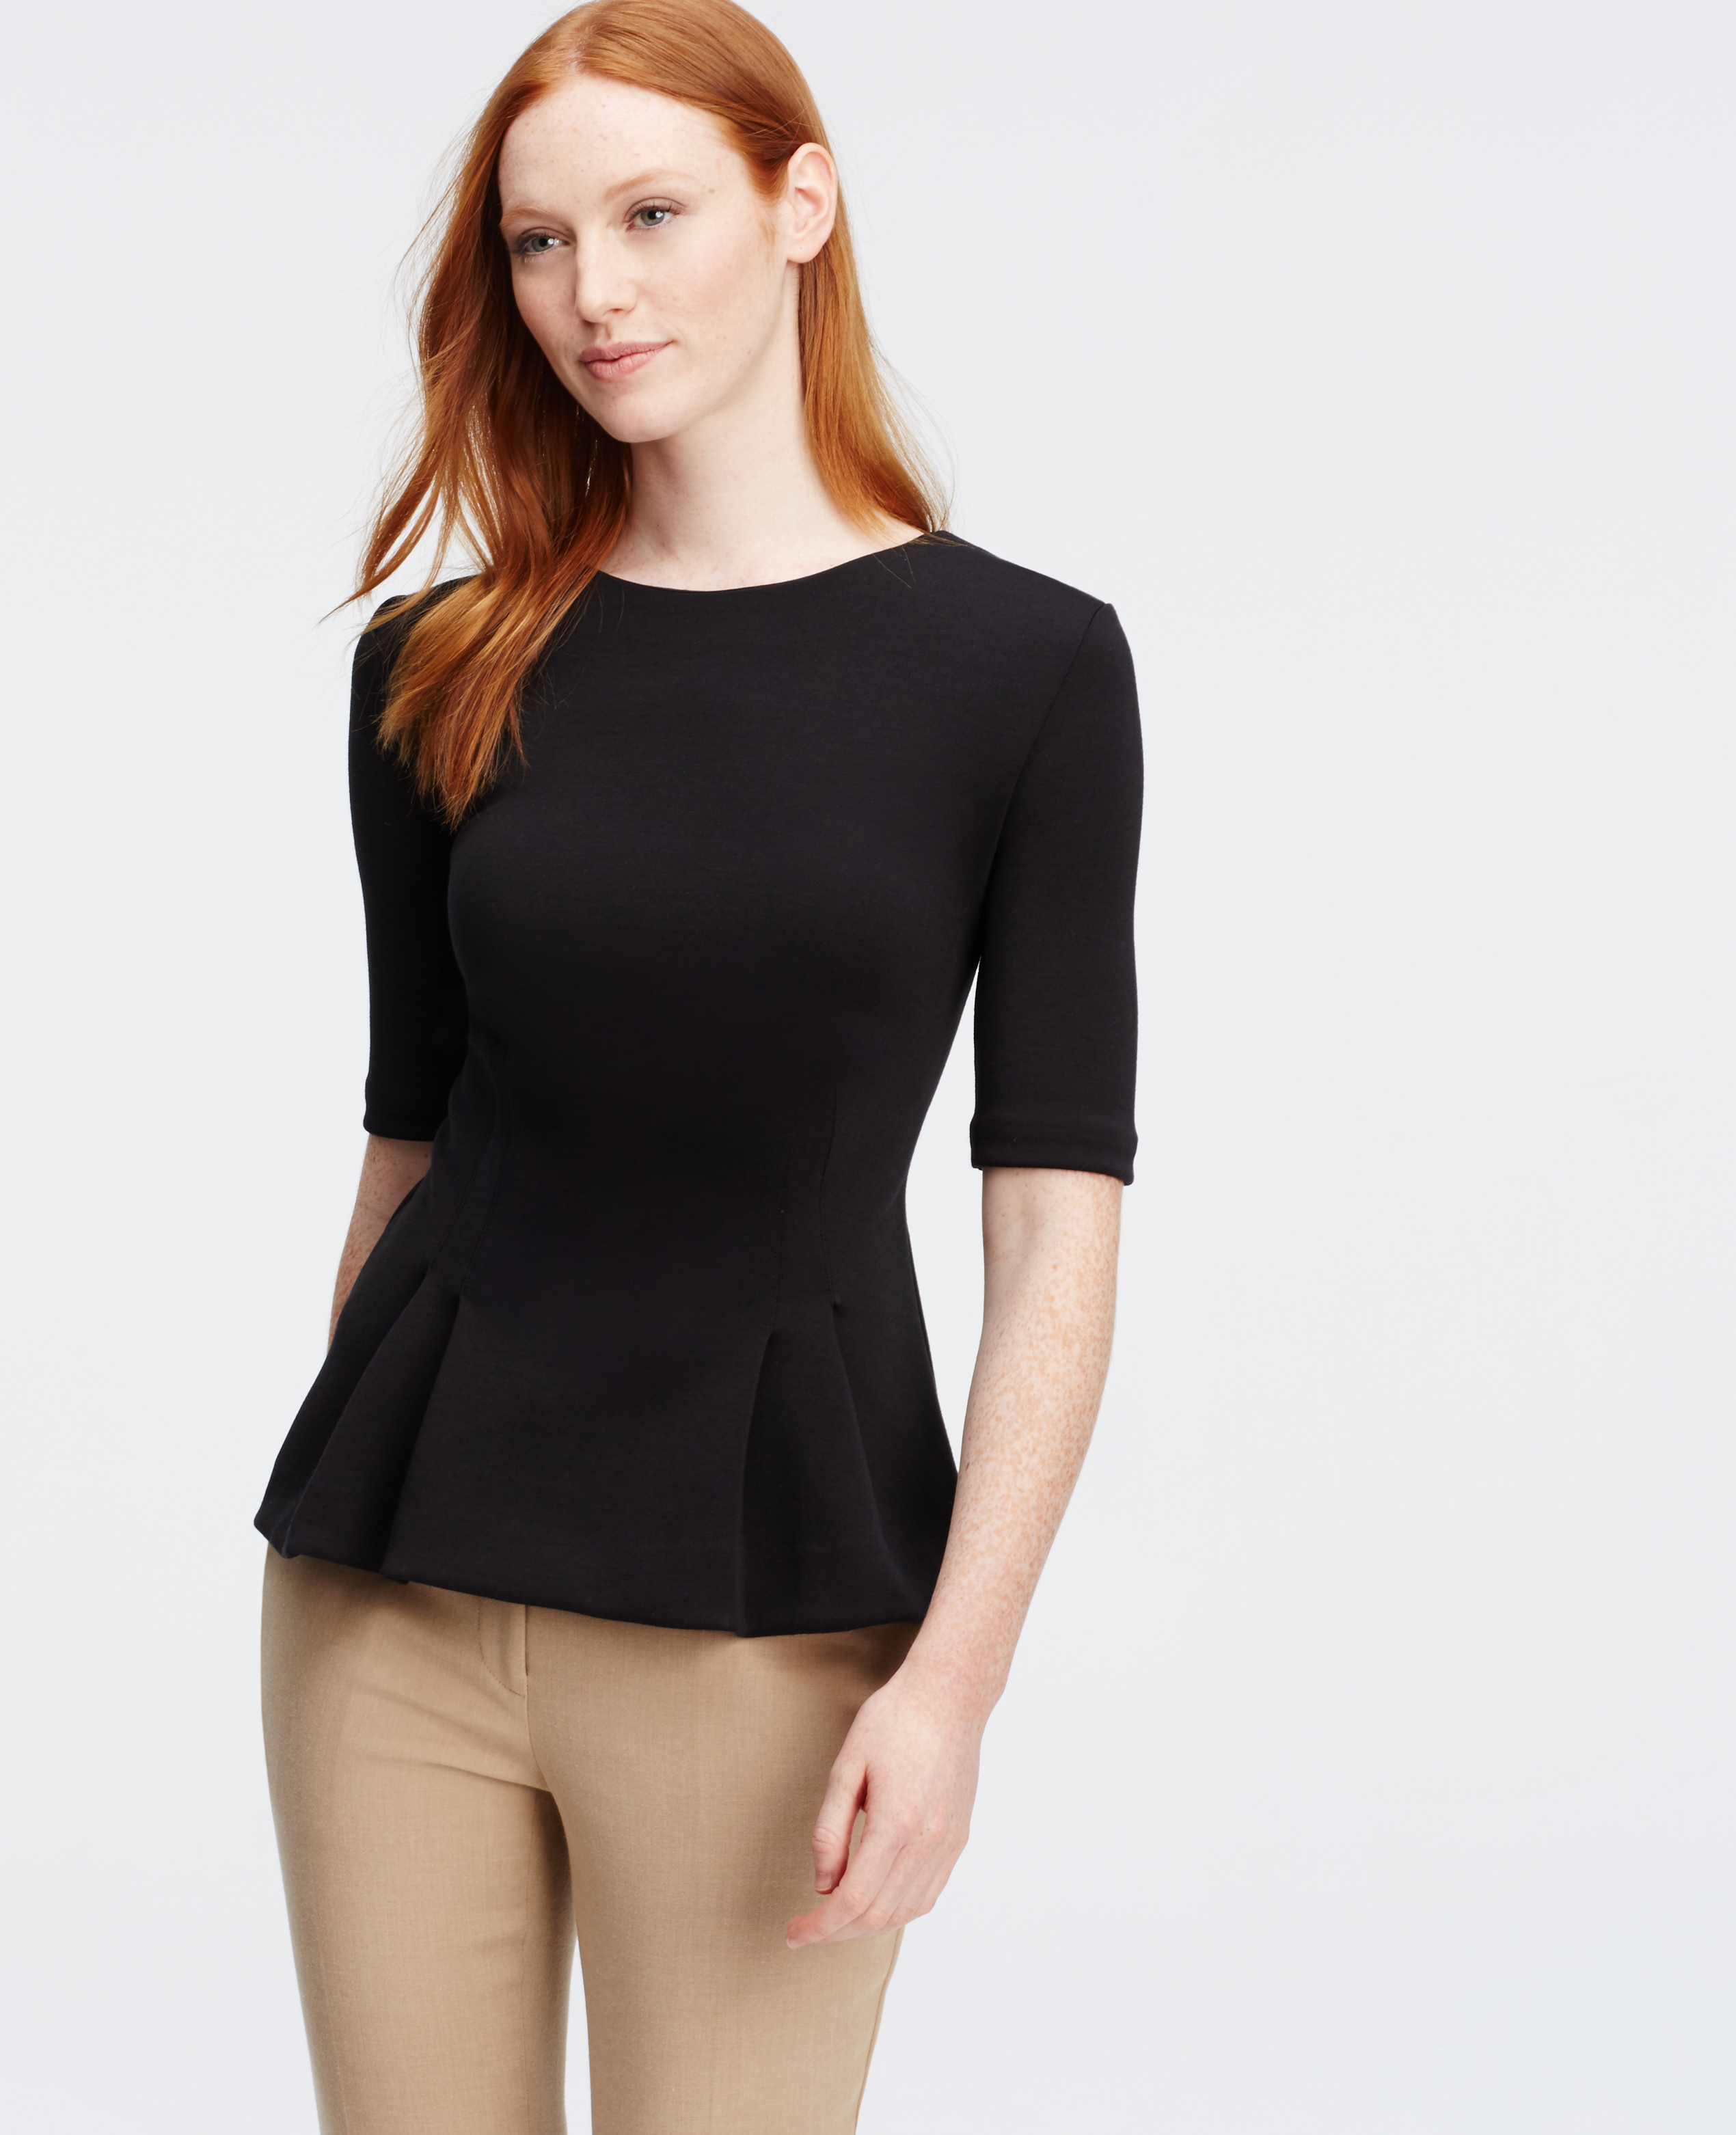 Ann taylor Petite Structured Peplum Short Sleeve Top in Black | Lyst